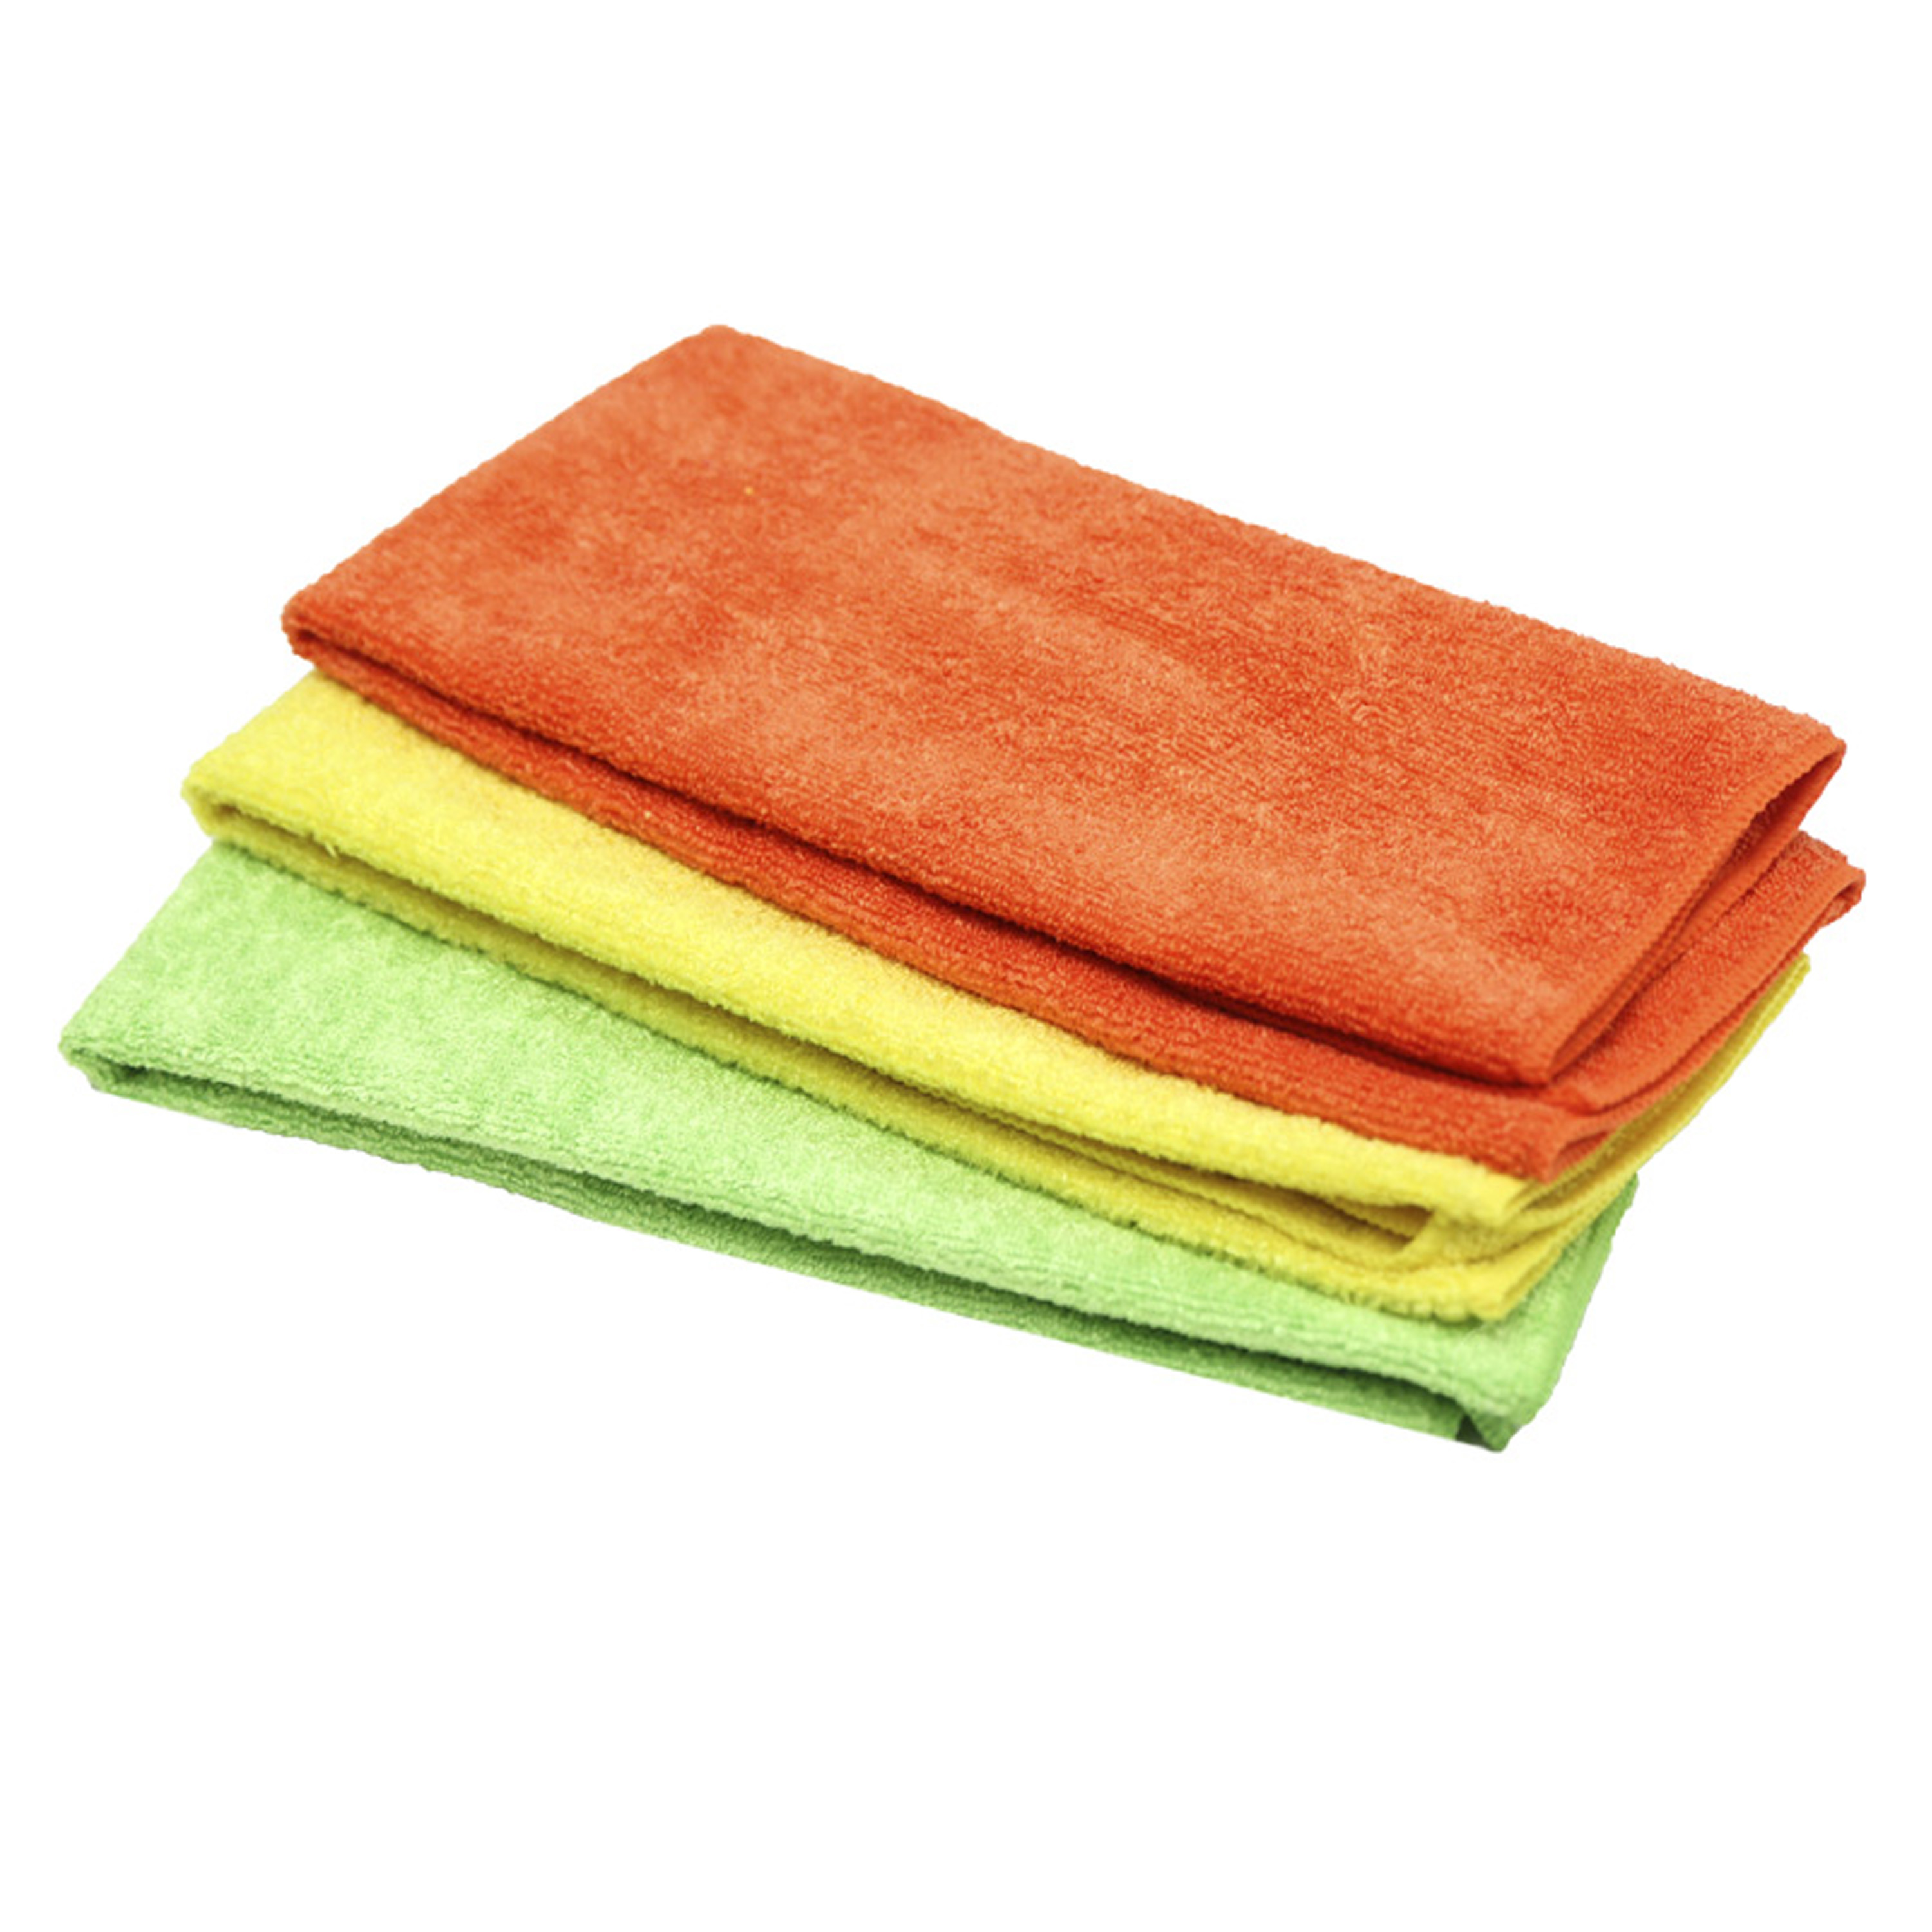 Viking Microfiber Final Shine Cleaning Towels - 3pk